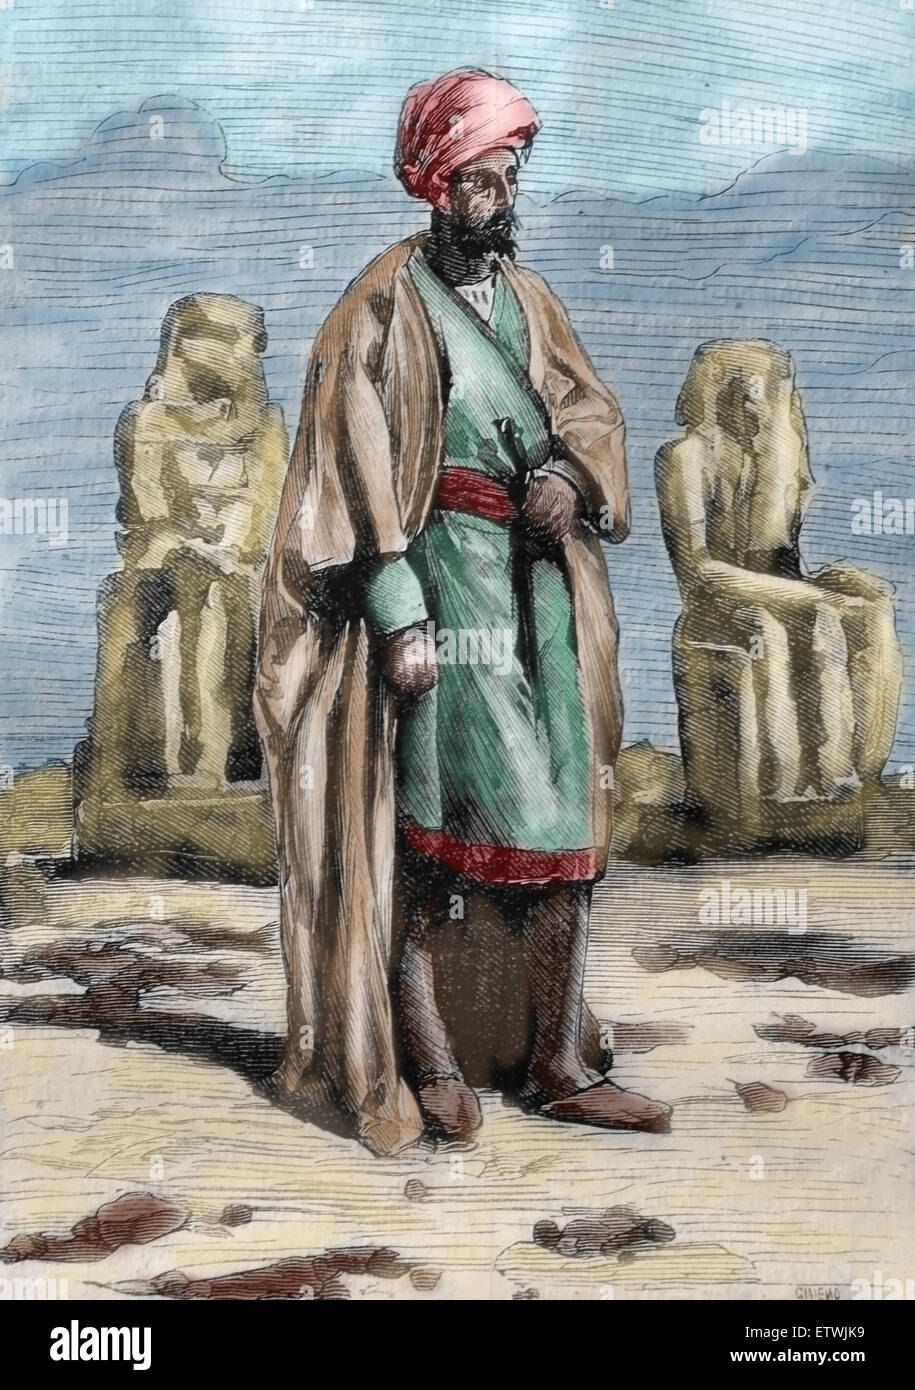 ibn battuta In the 14th century, the moroccan wanderer ibn battuta spent nearly 30 years traveling some 75,000 miles across africa, the middle east, india and southeast asia.